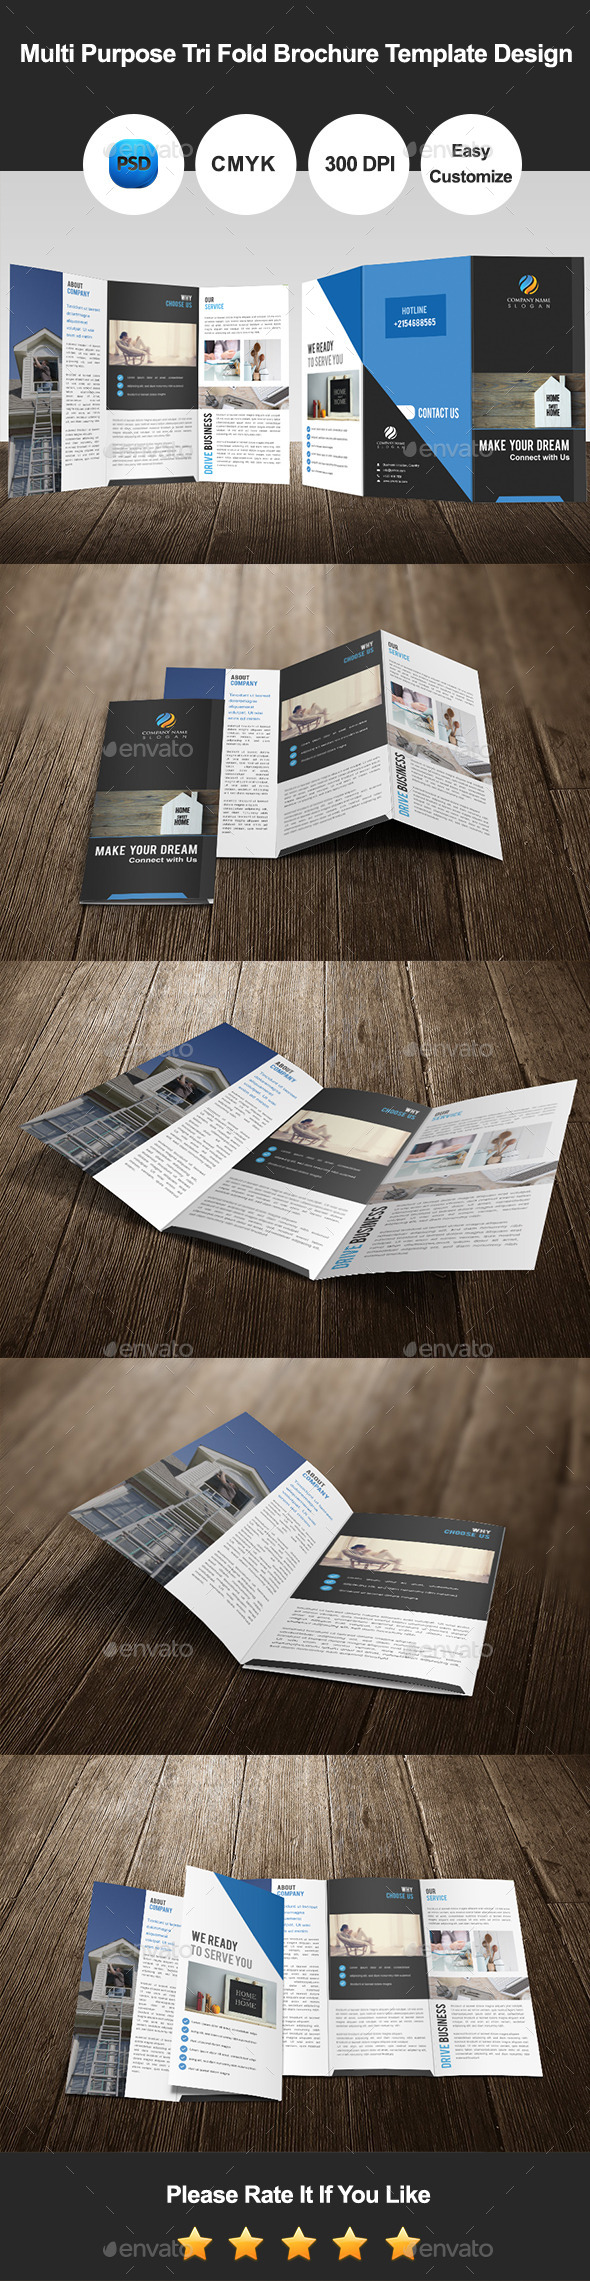 GraphicRiver Multi Purpose Tri Fold Brochure Template Design 11502614